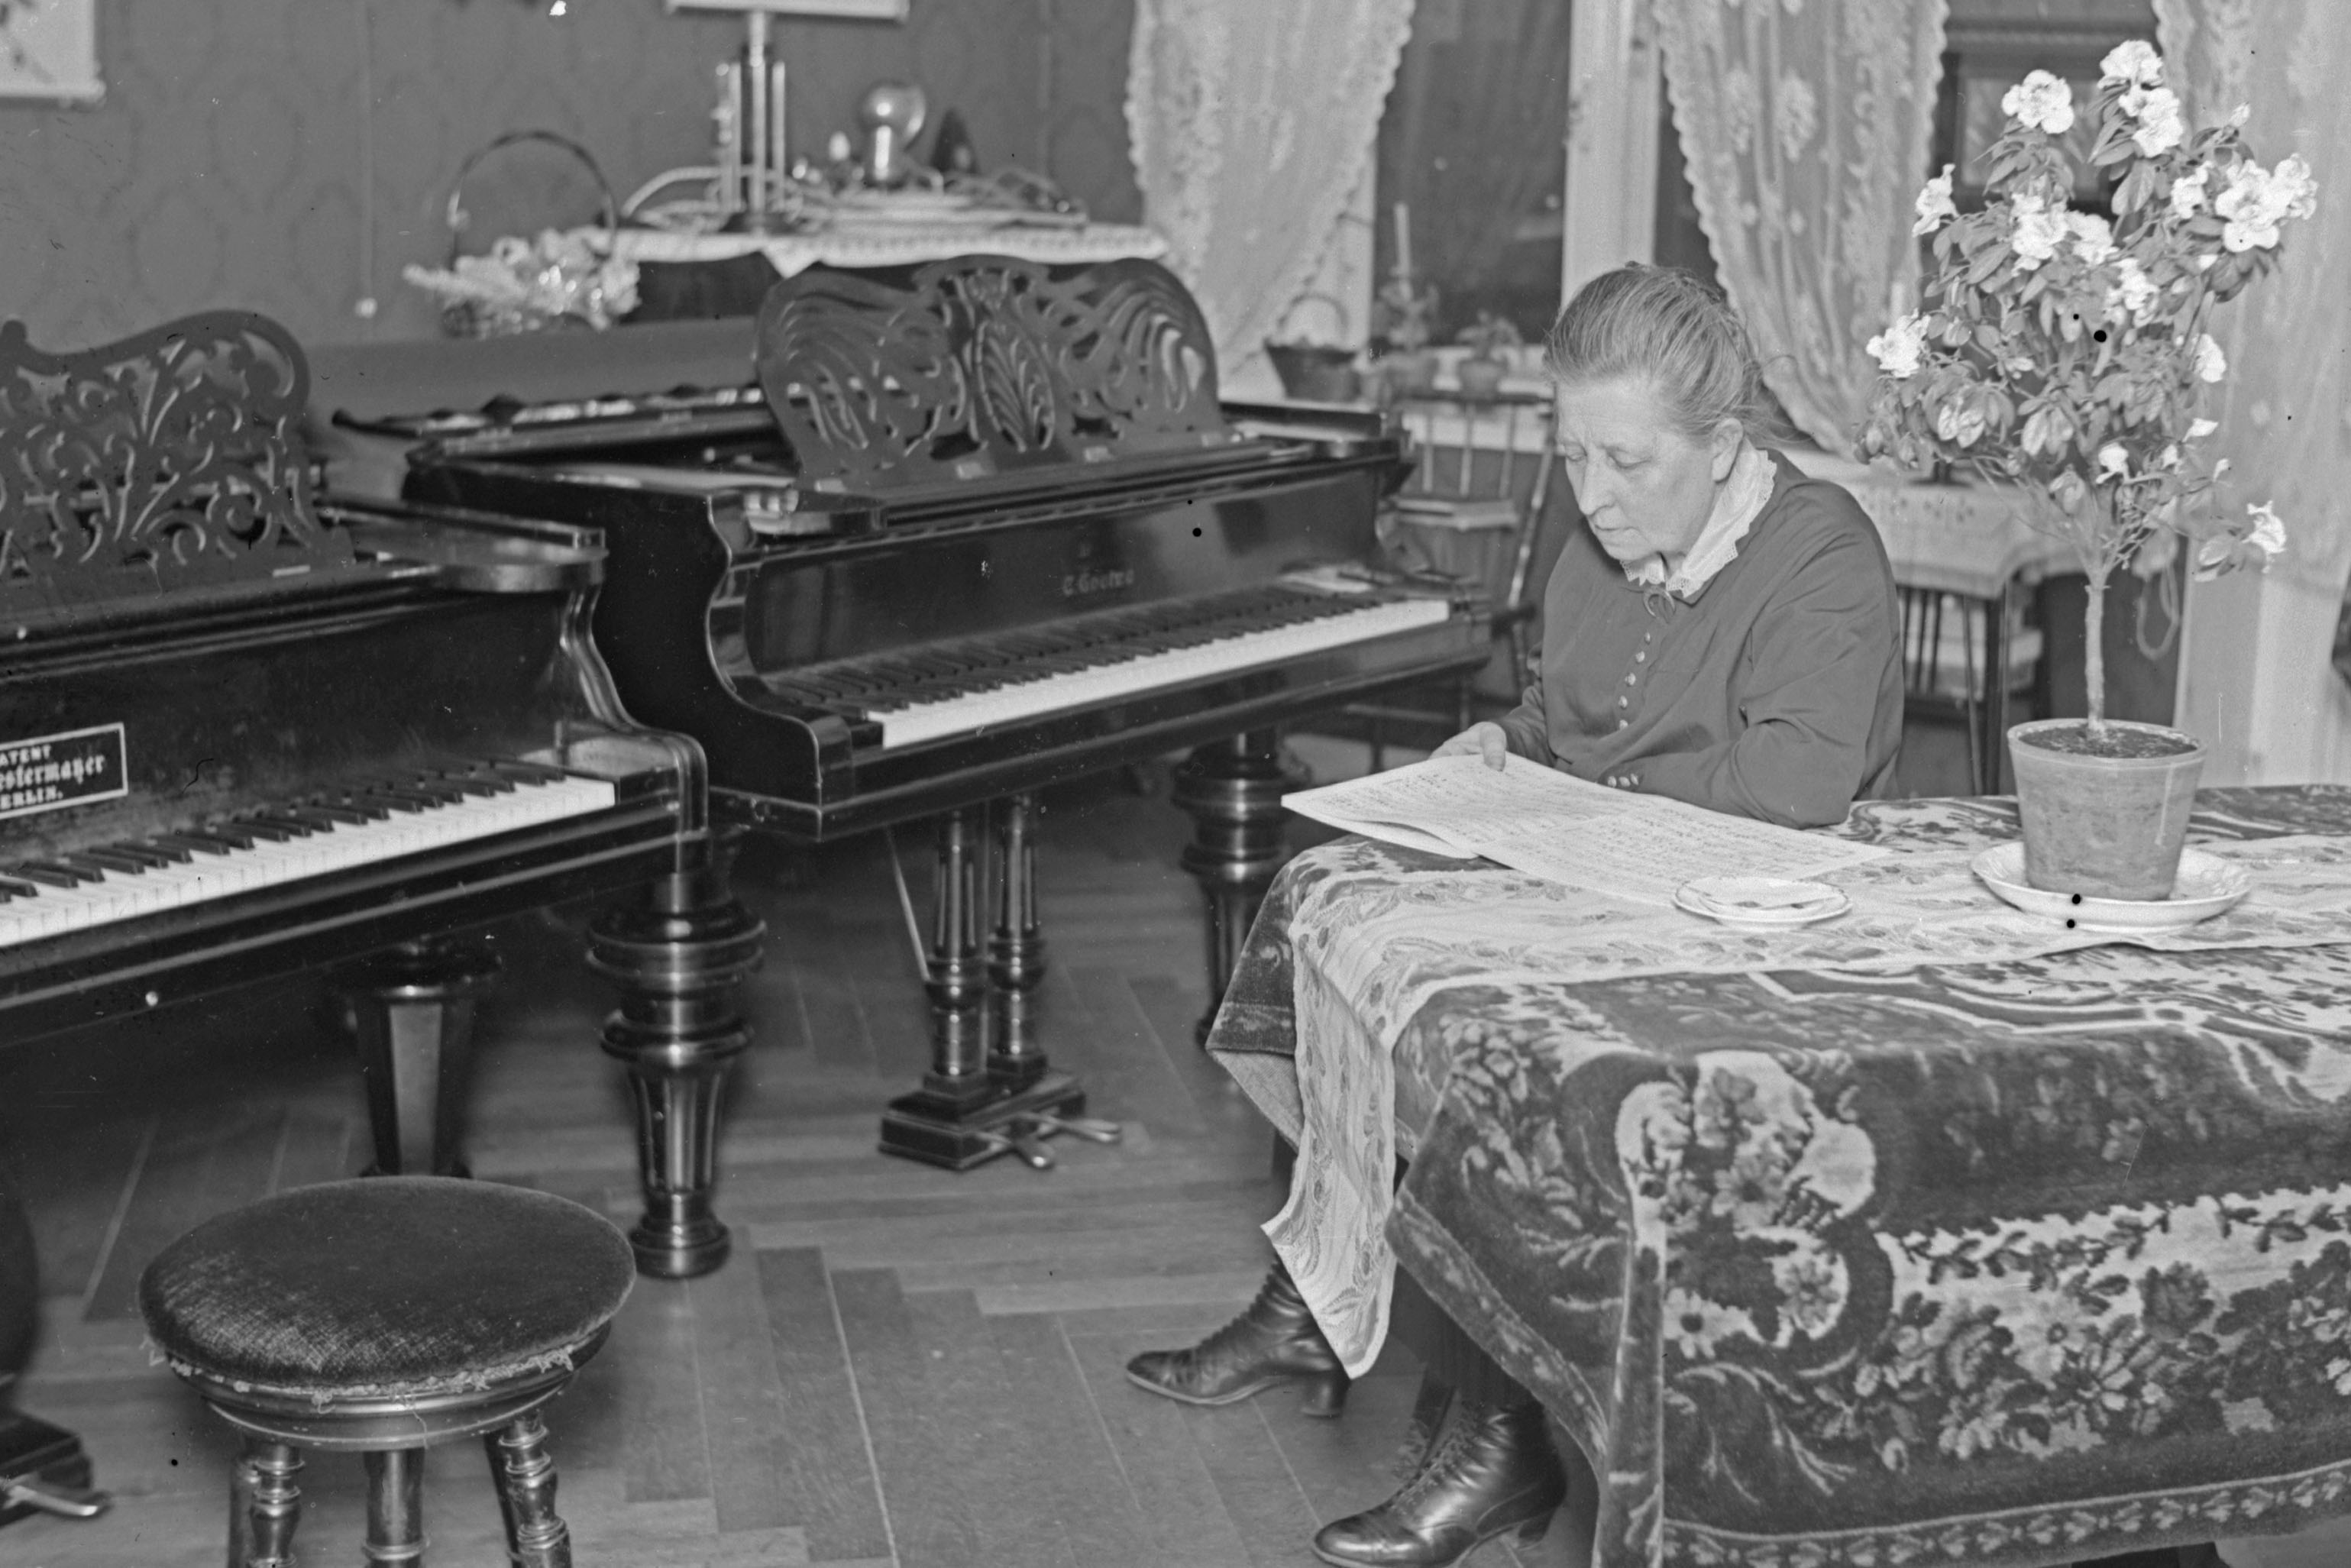 The history of playing the piano in Finland